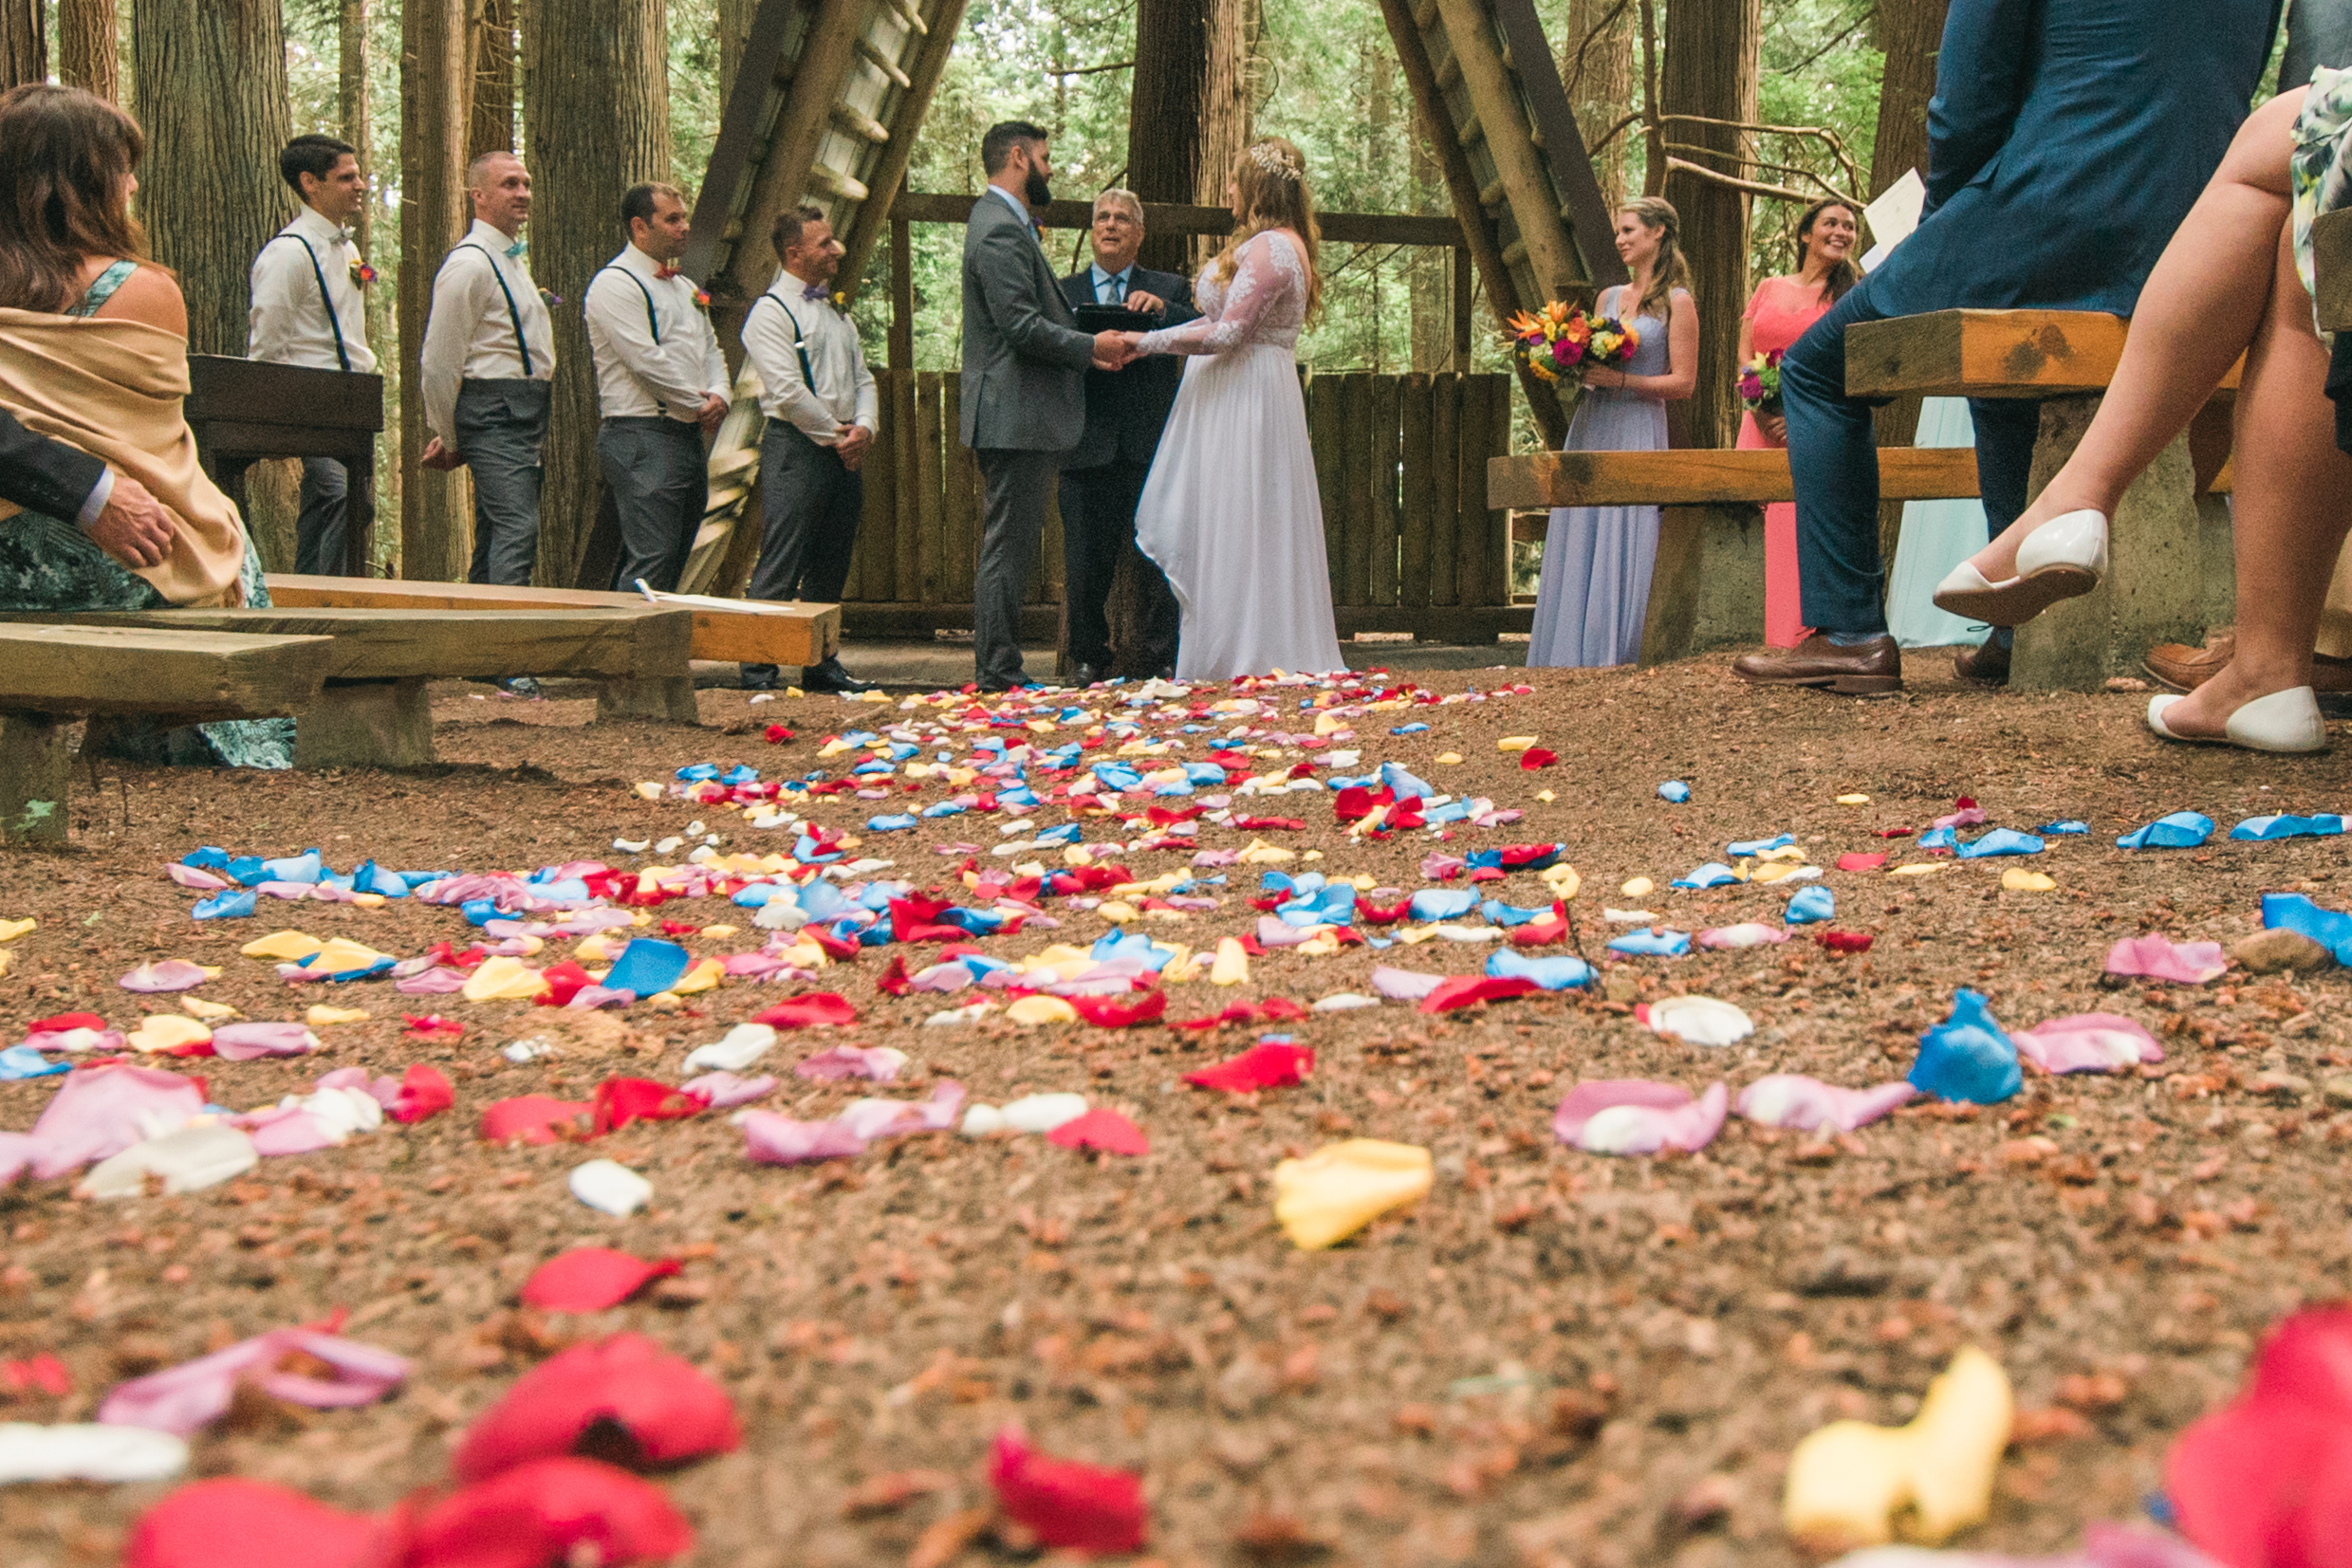 We're in love with this forest wedding.